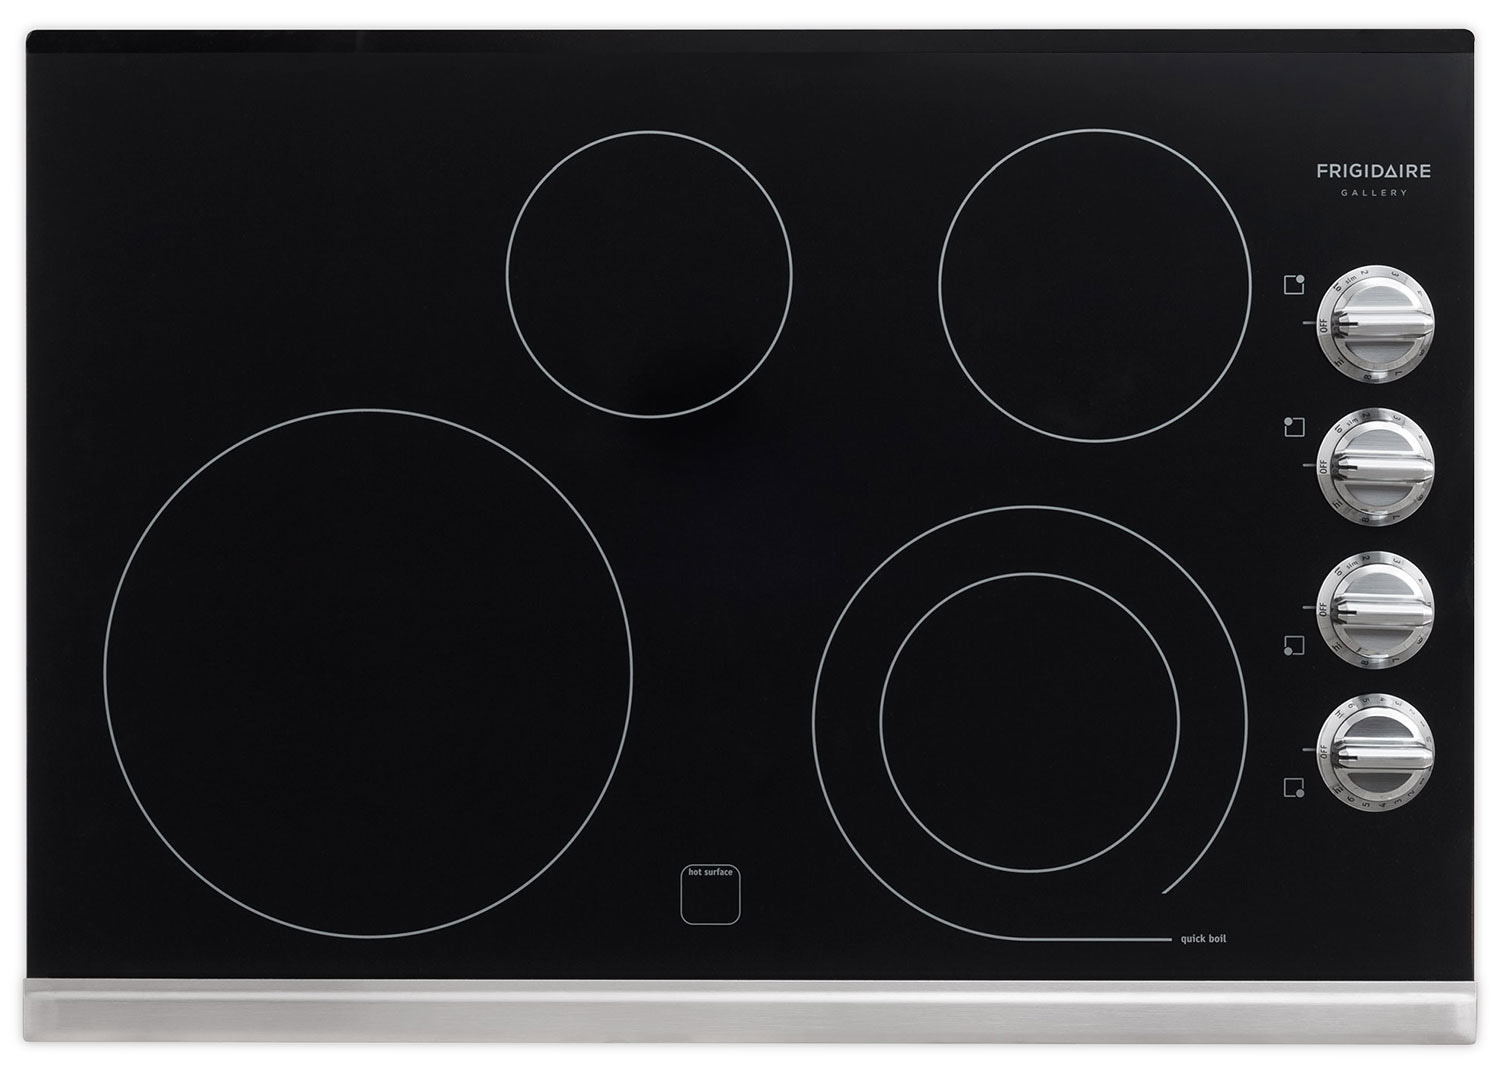 Cooking Products - Frigidaire Gallery Stainless Steel Electric Cooktop - FGEC3045PS